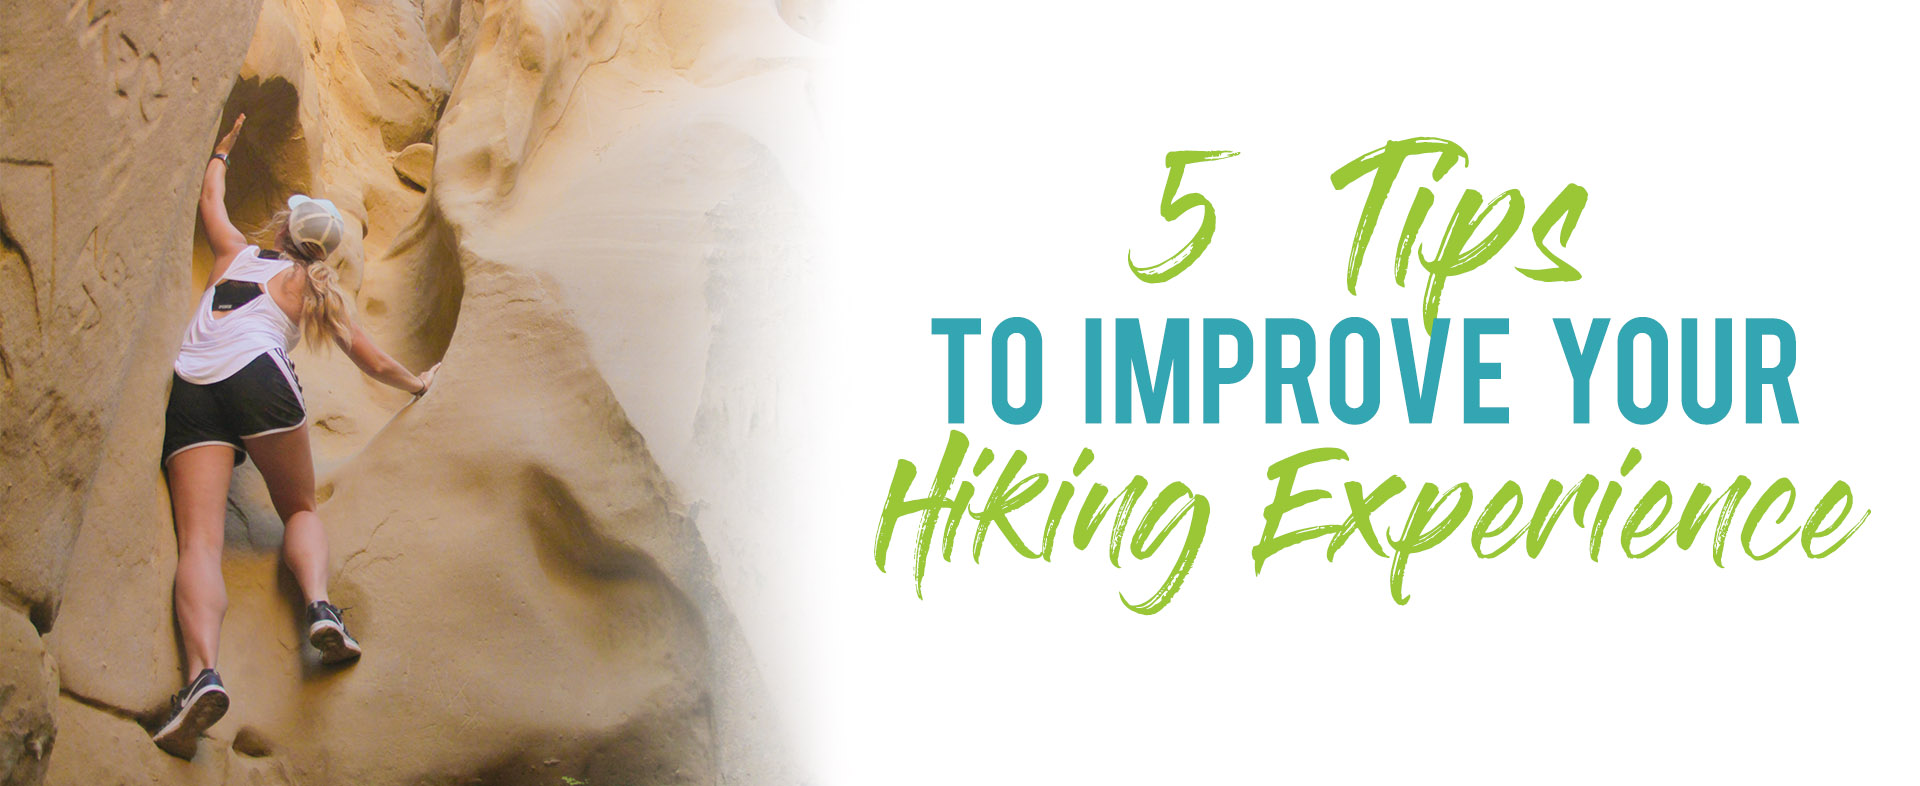 5 Tip to improve your hiking experience